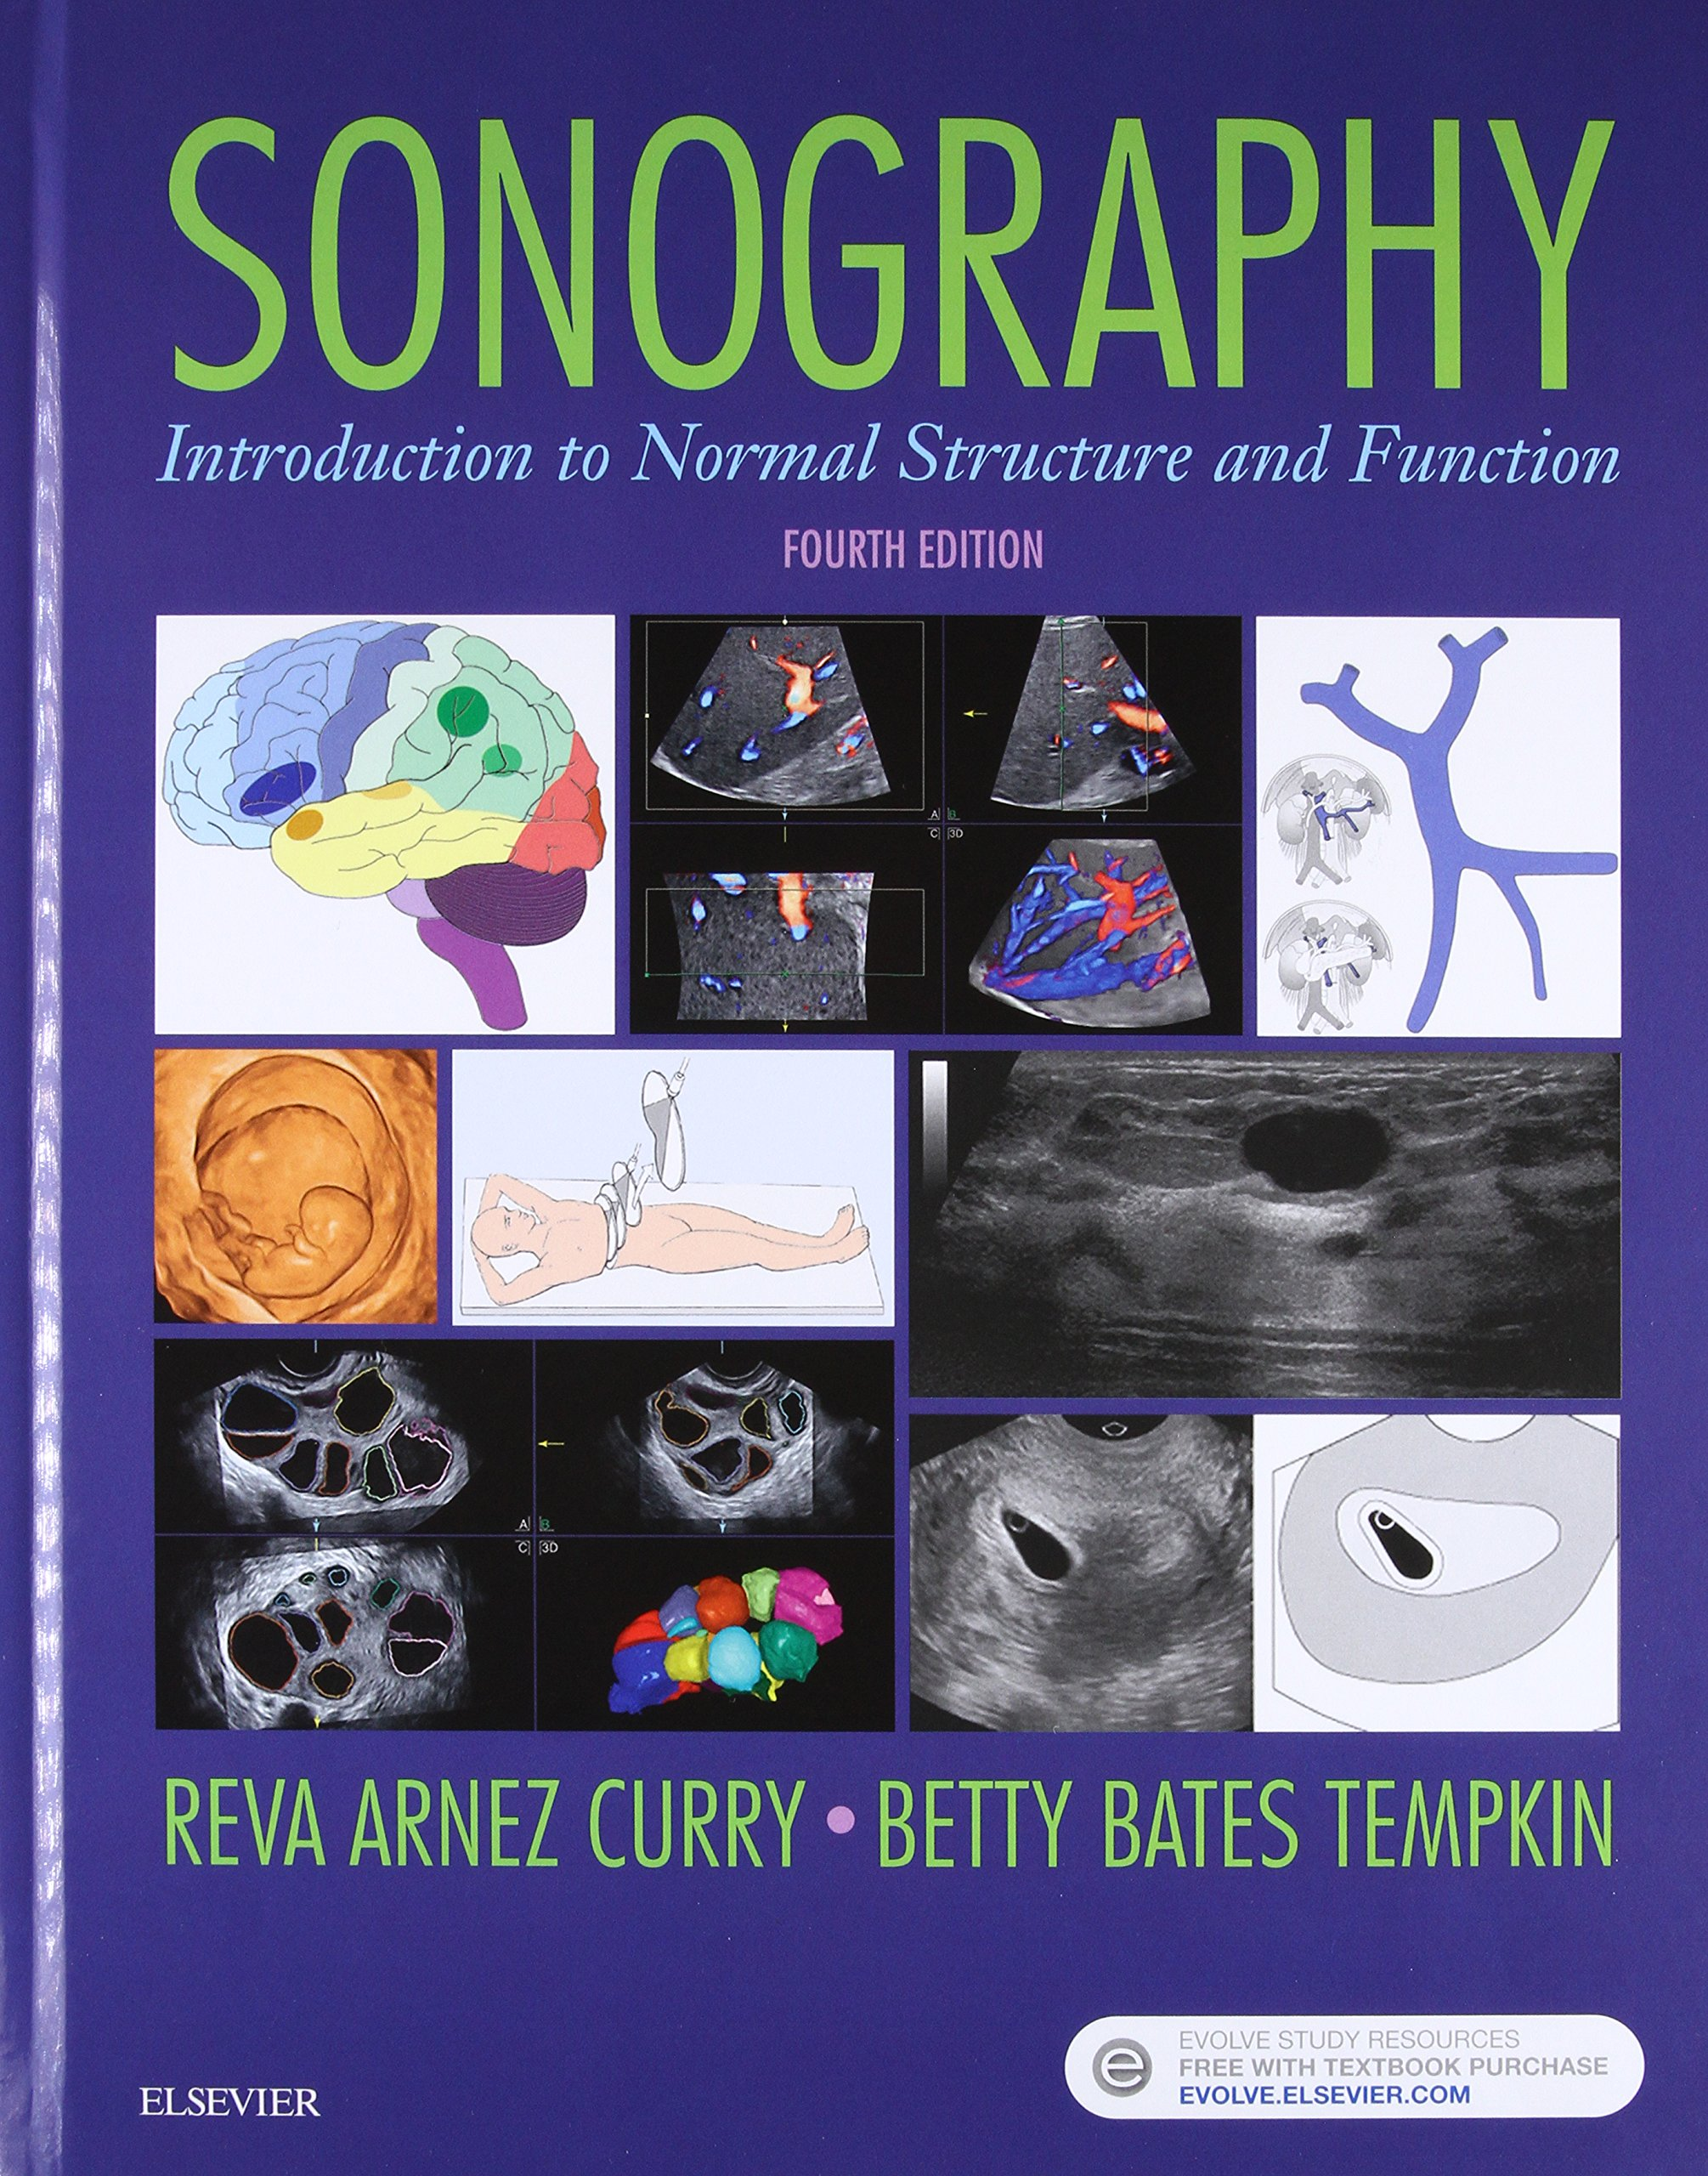 Sonography: Introduction to Normal Structure and Function, 4e